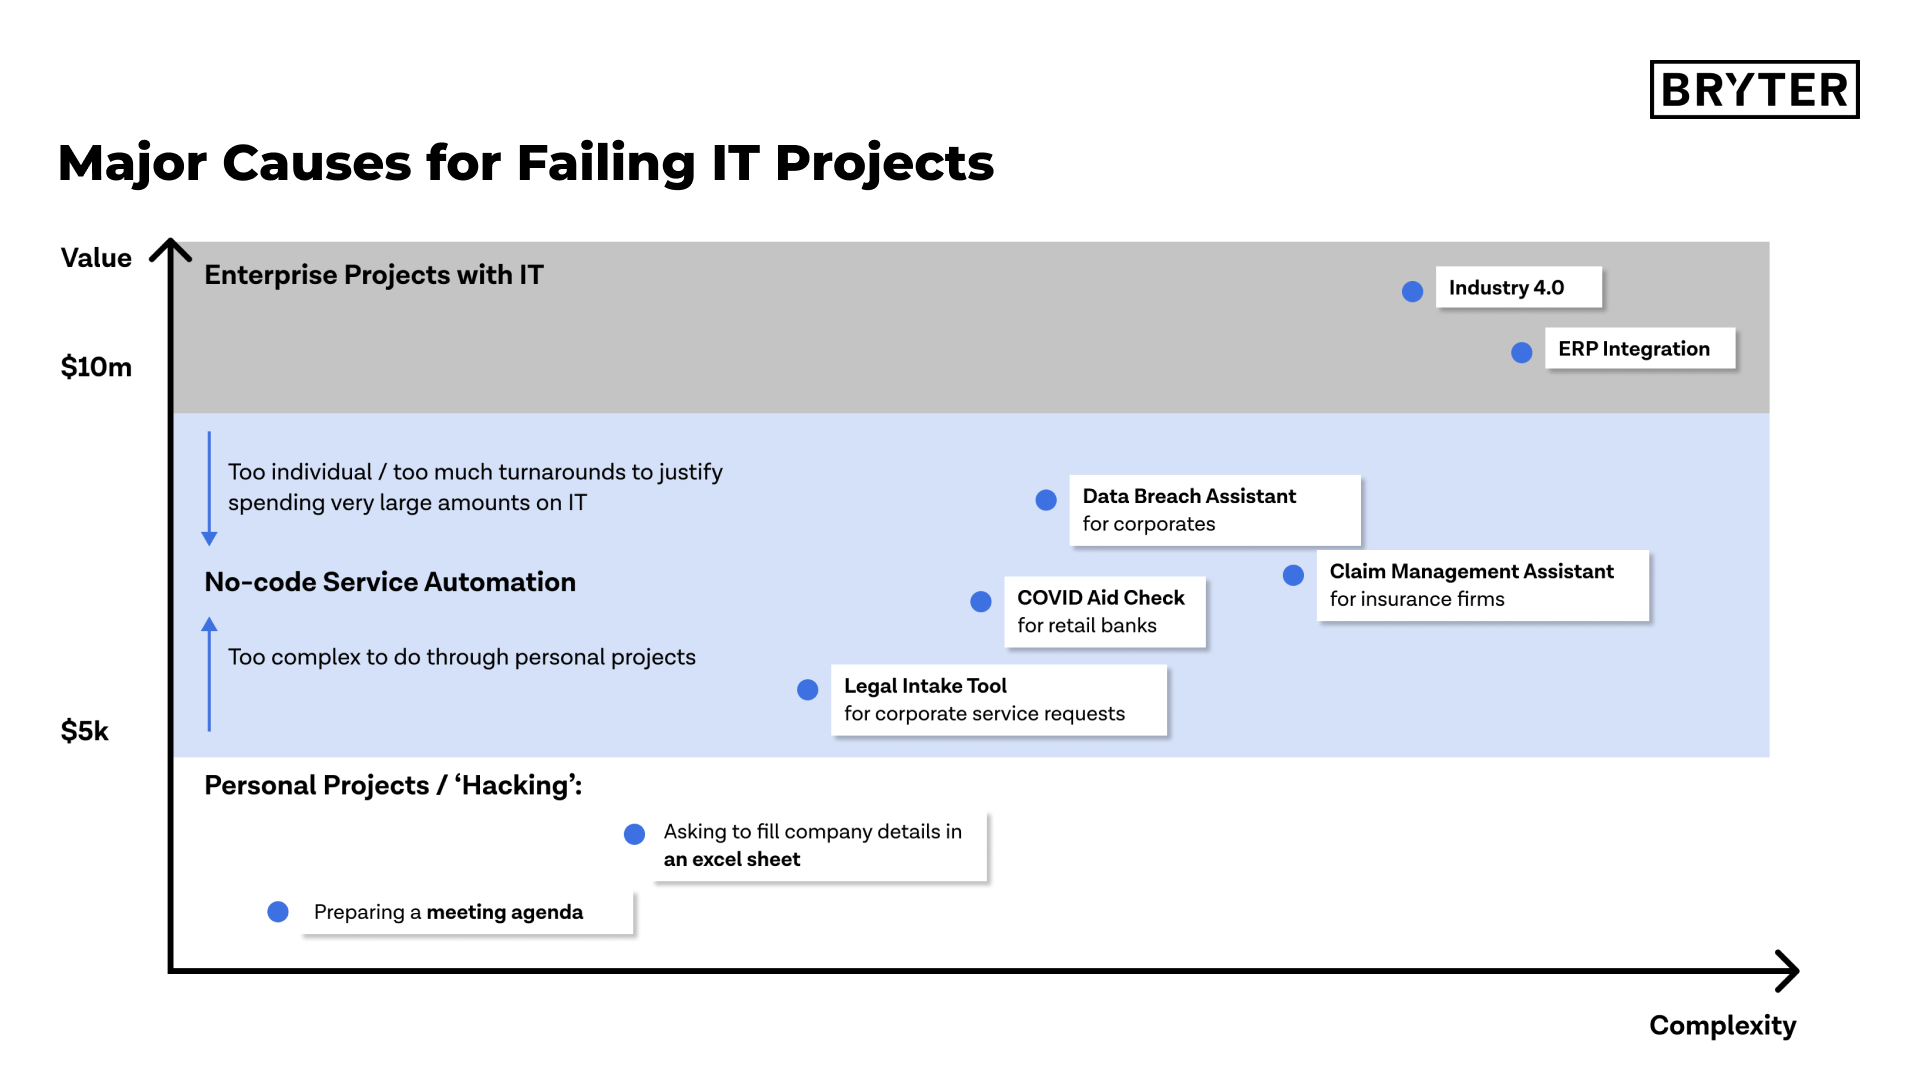 Major Causes for Failing IT Projects